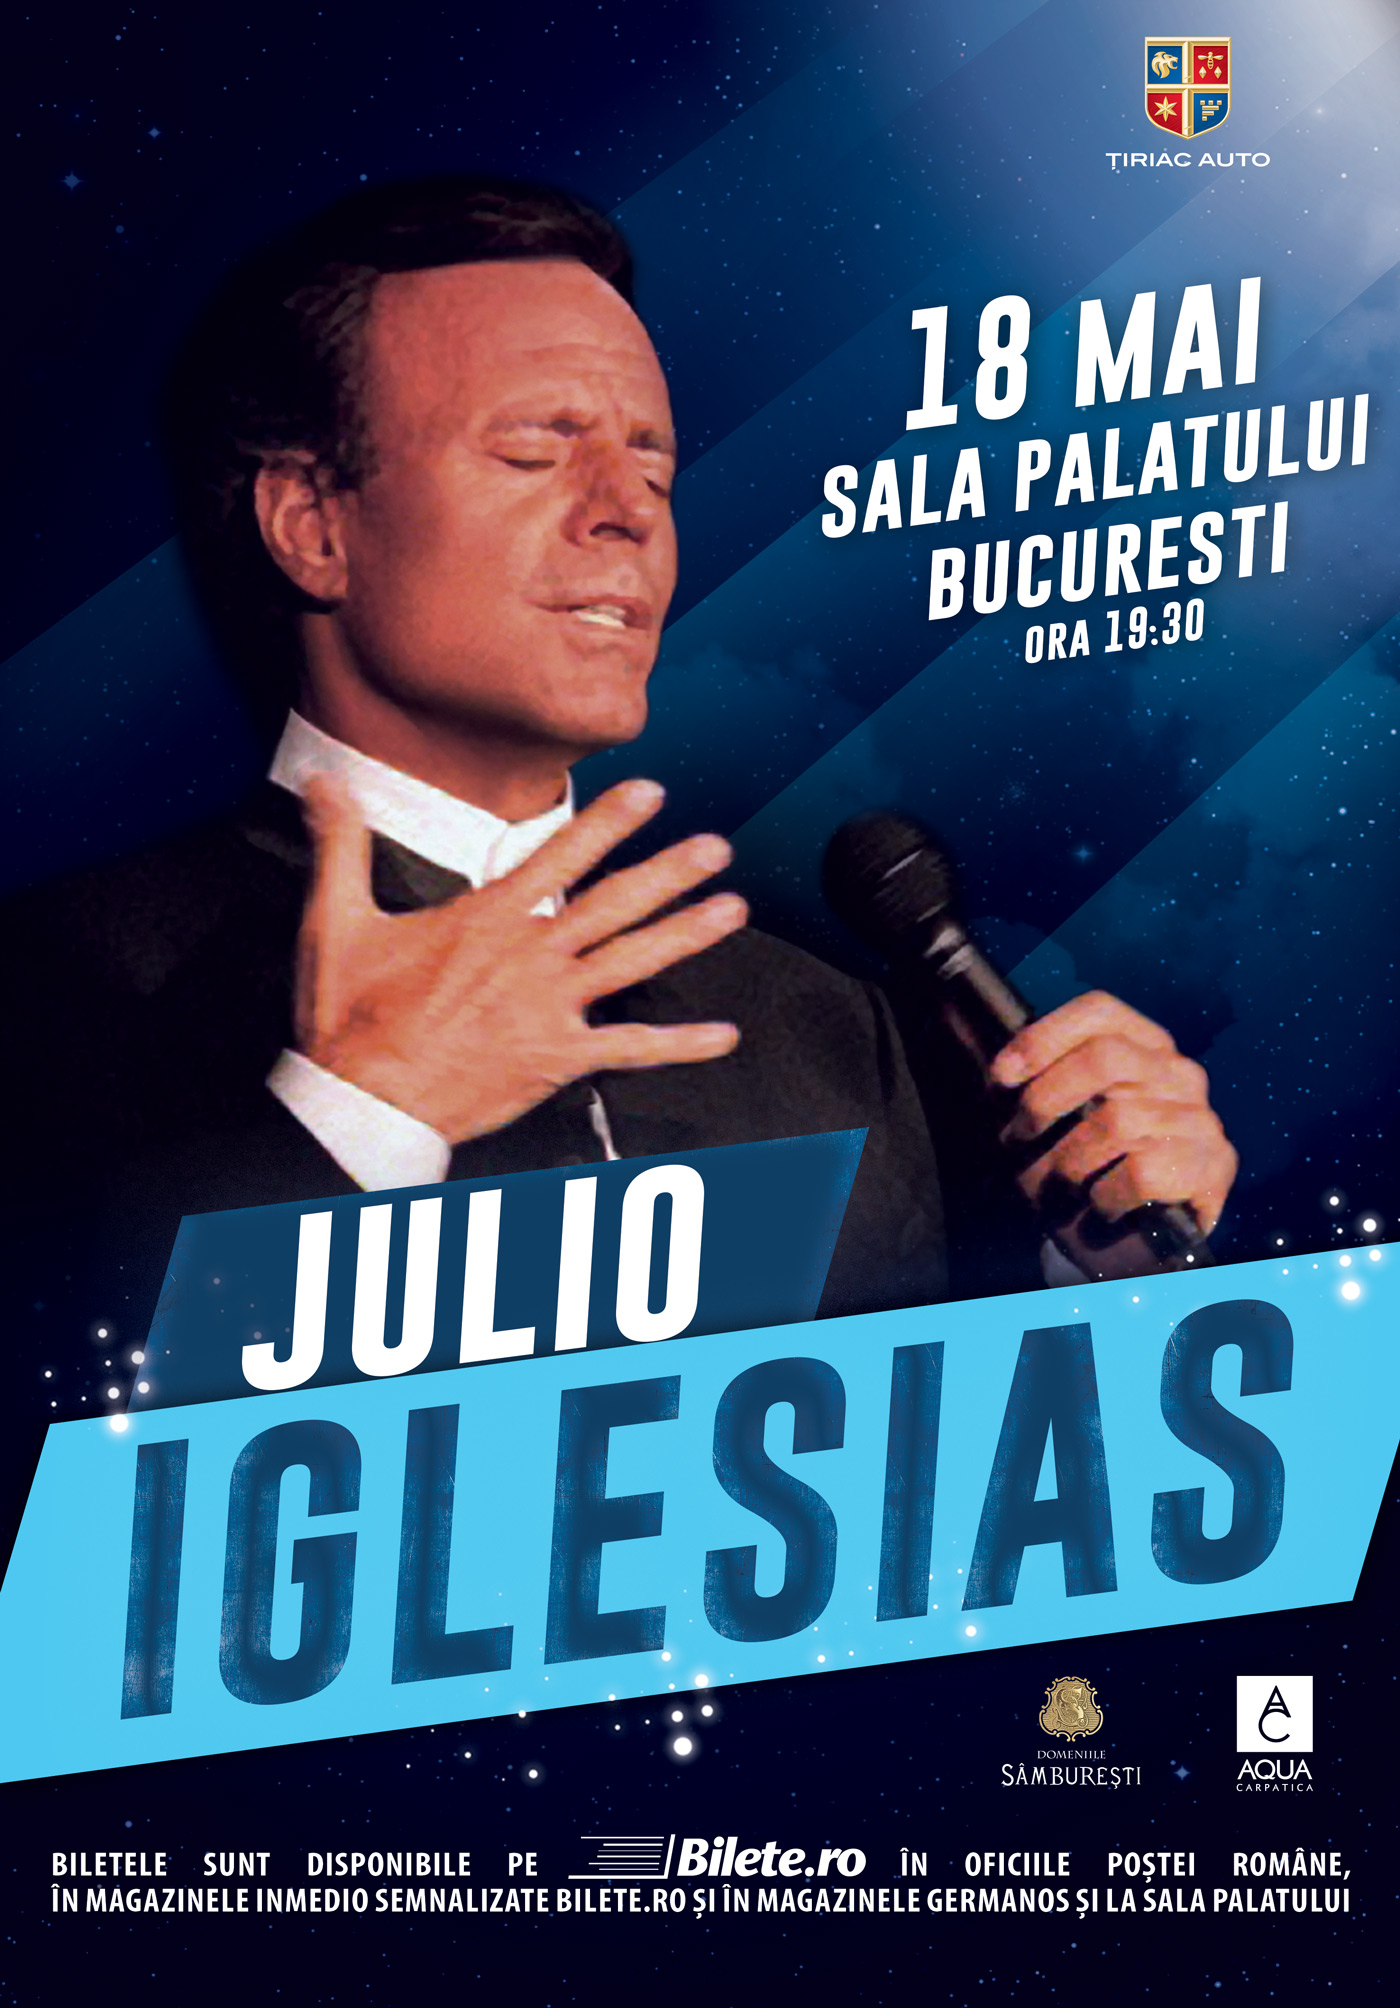 Julio Iglesias revine in Bucuresti pe 18 Mai